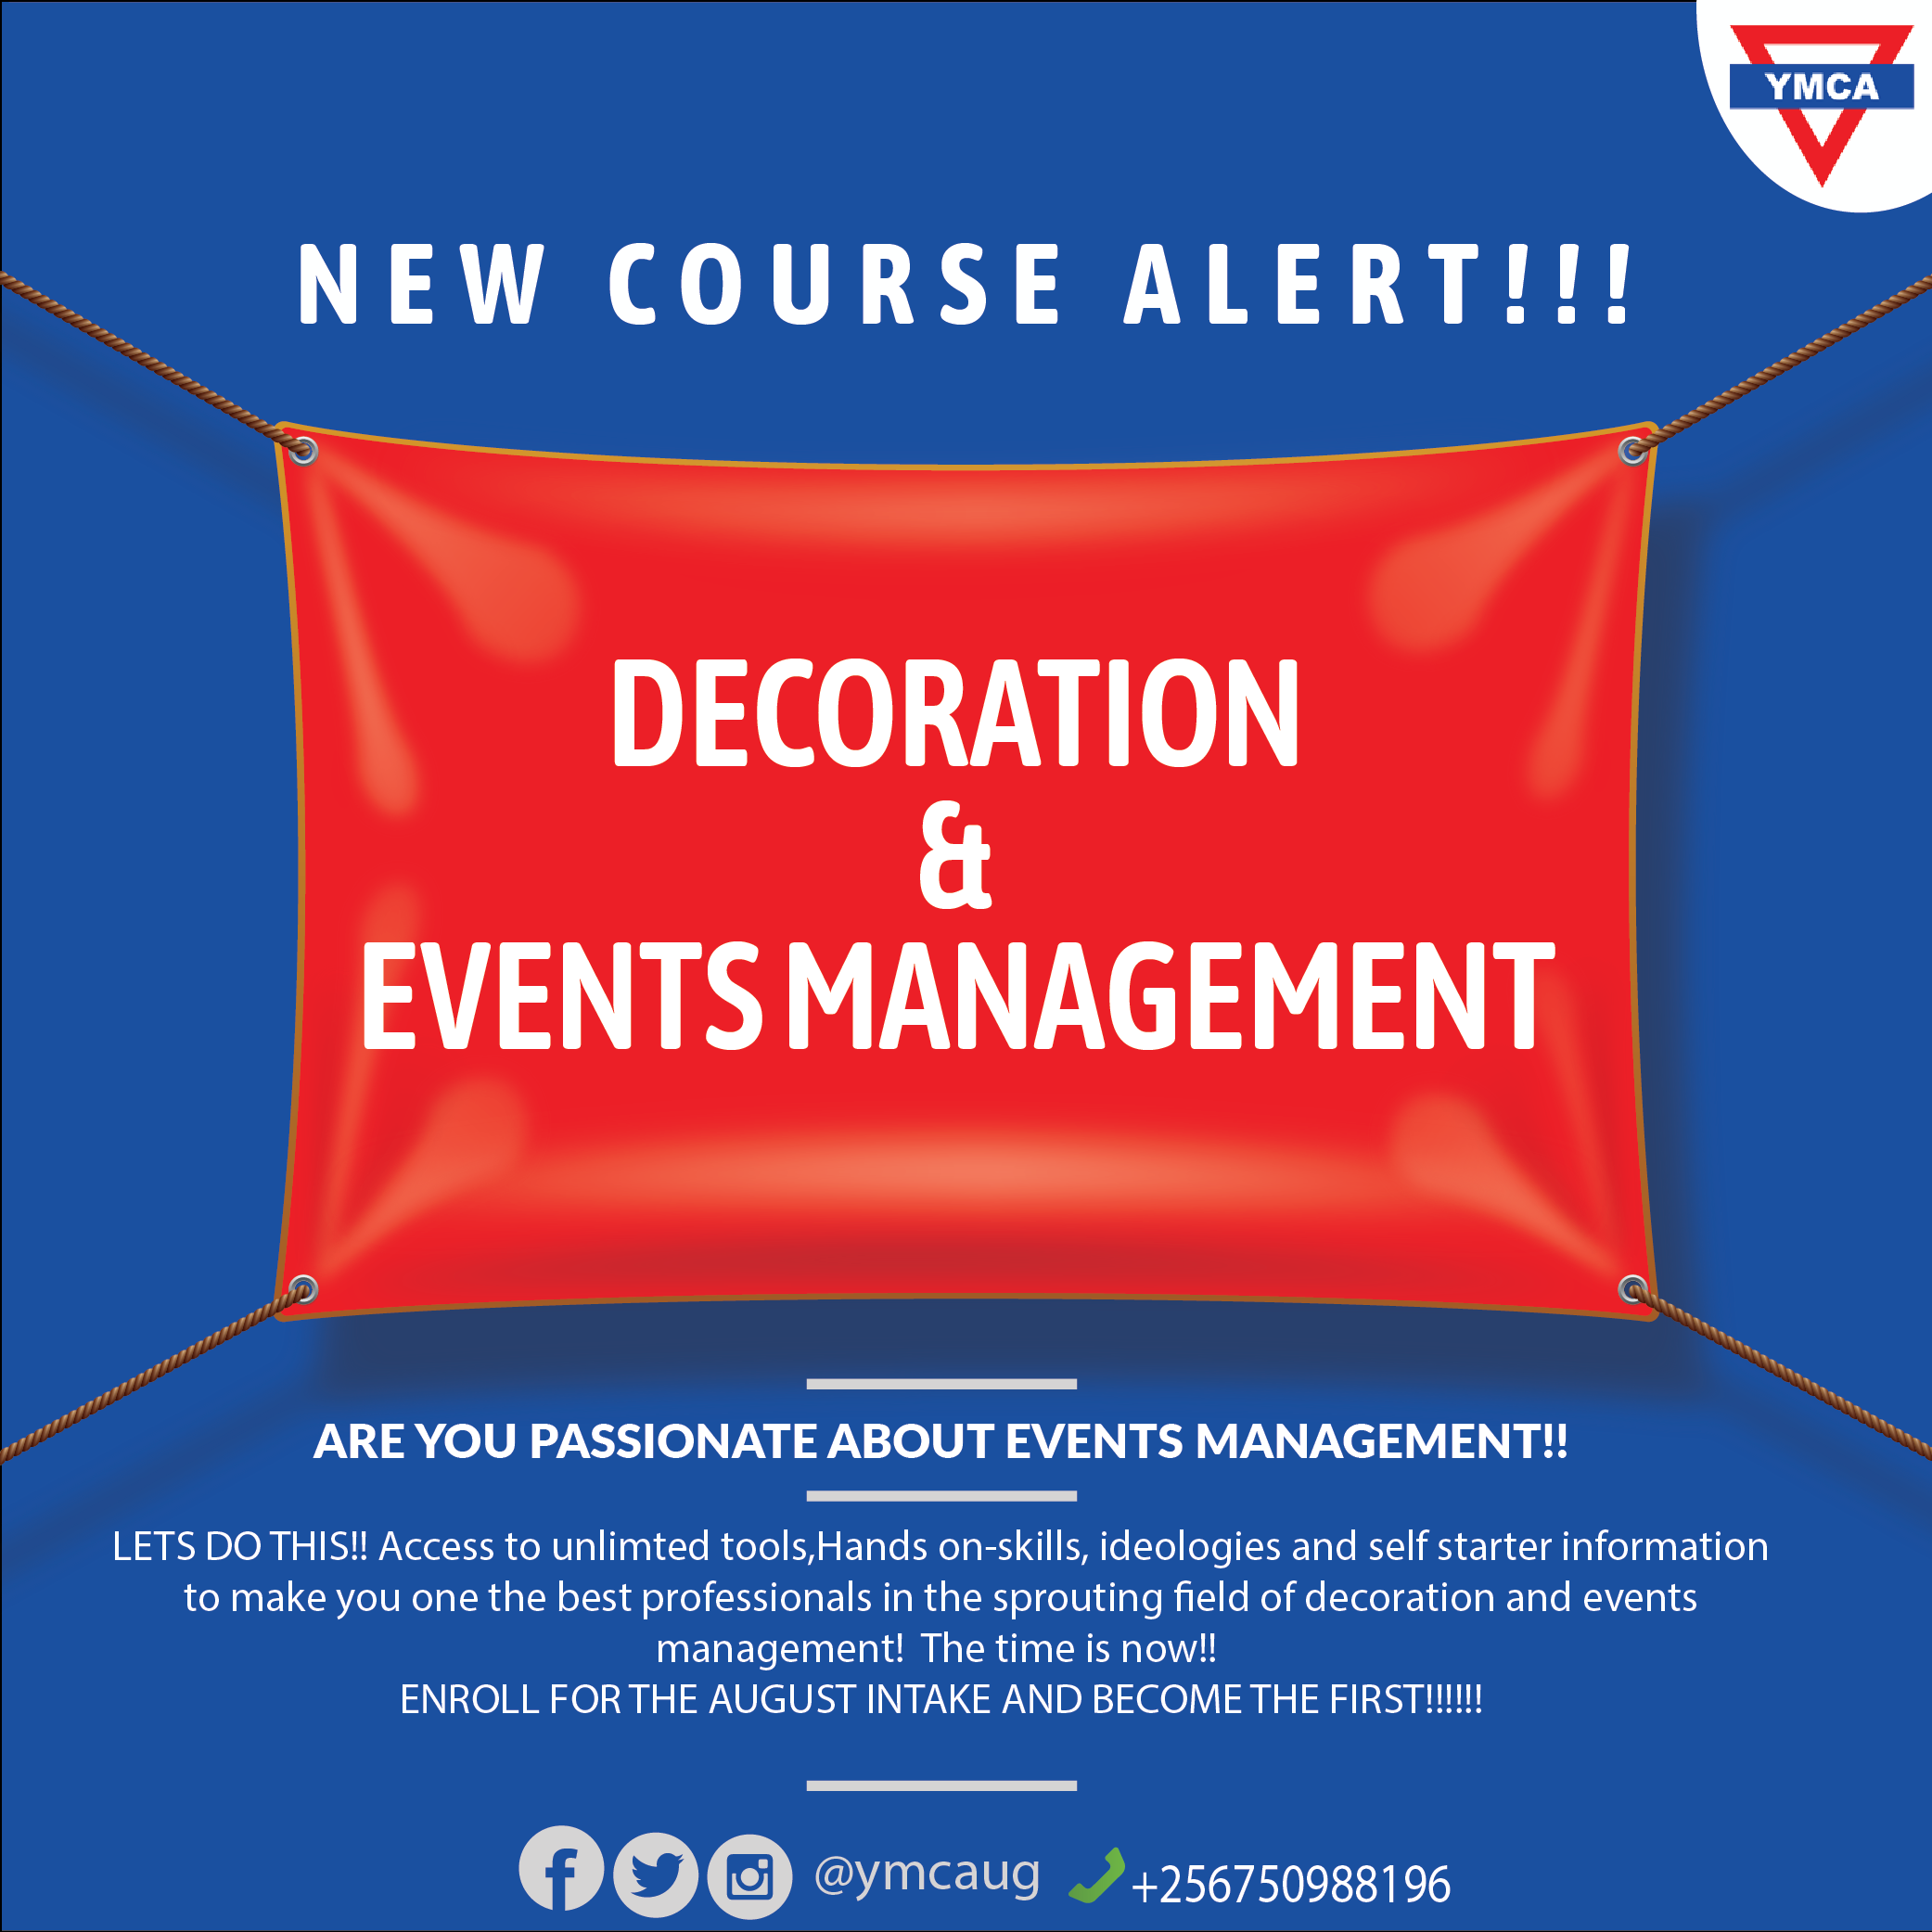 NEW COURSE: DECORATION AND EVENTS MANAGEMENT